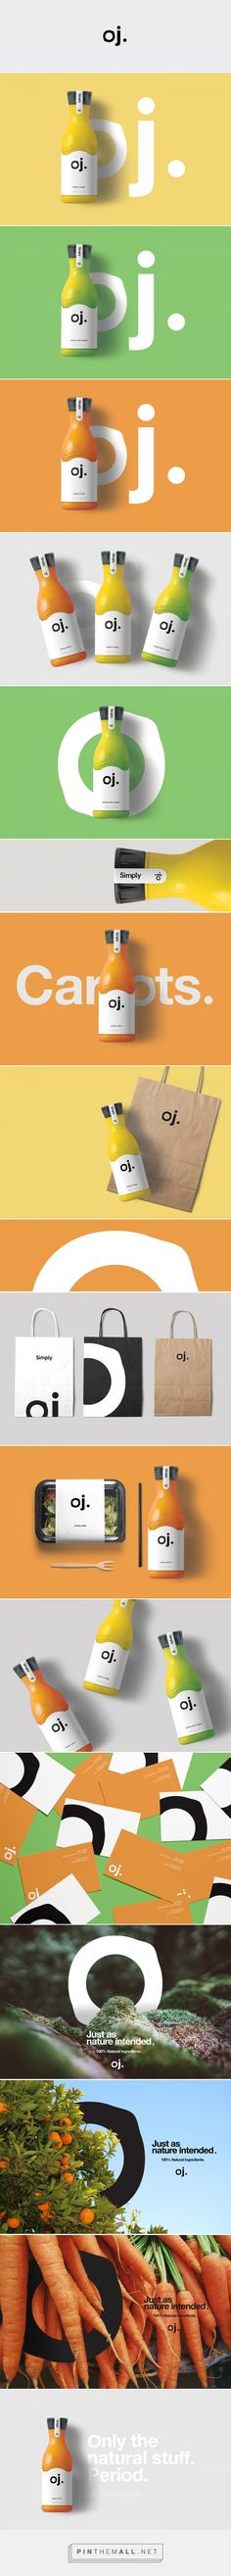 Love the branding and packaging x Juice Packaging, Beverage Packaging, Brand Packaging, Menu Design, Label Design, Package Design, Food Branding, Branding Design, Logo Design